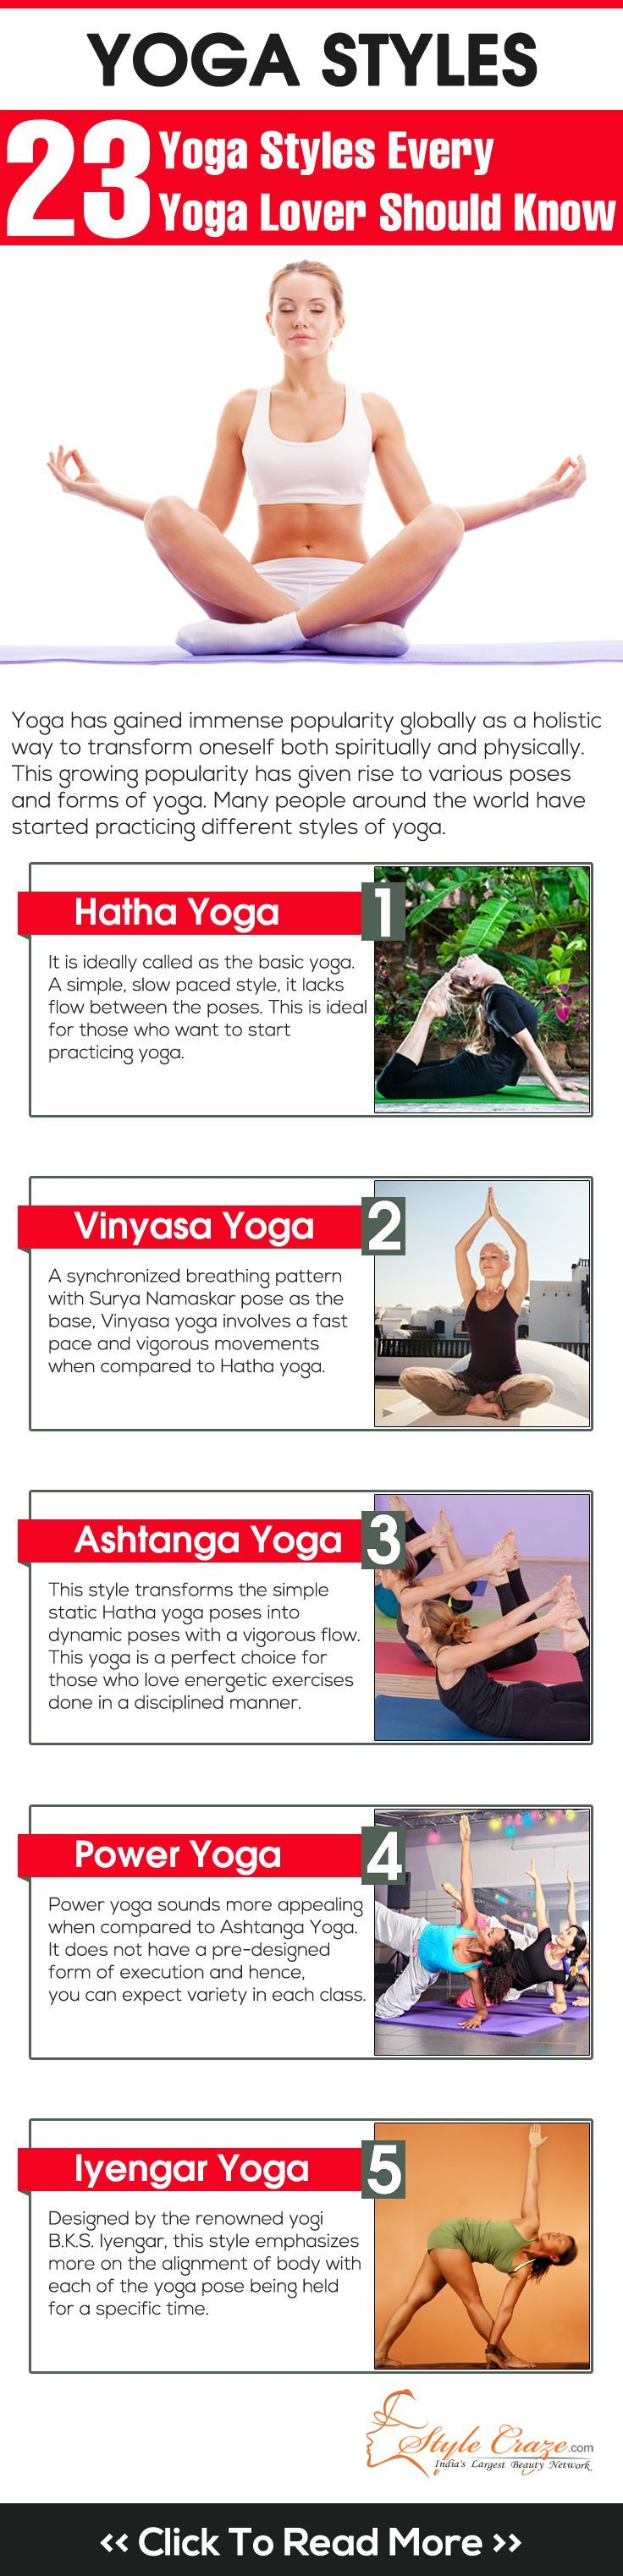 Yoga Styles Every Yoga Lover Should Know